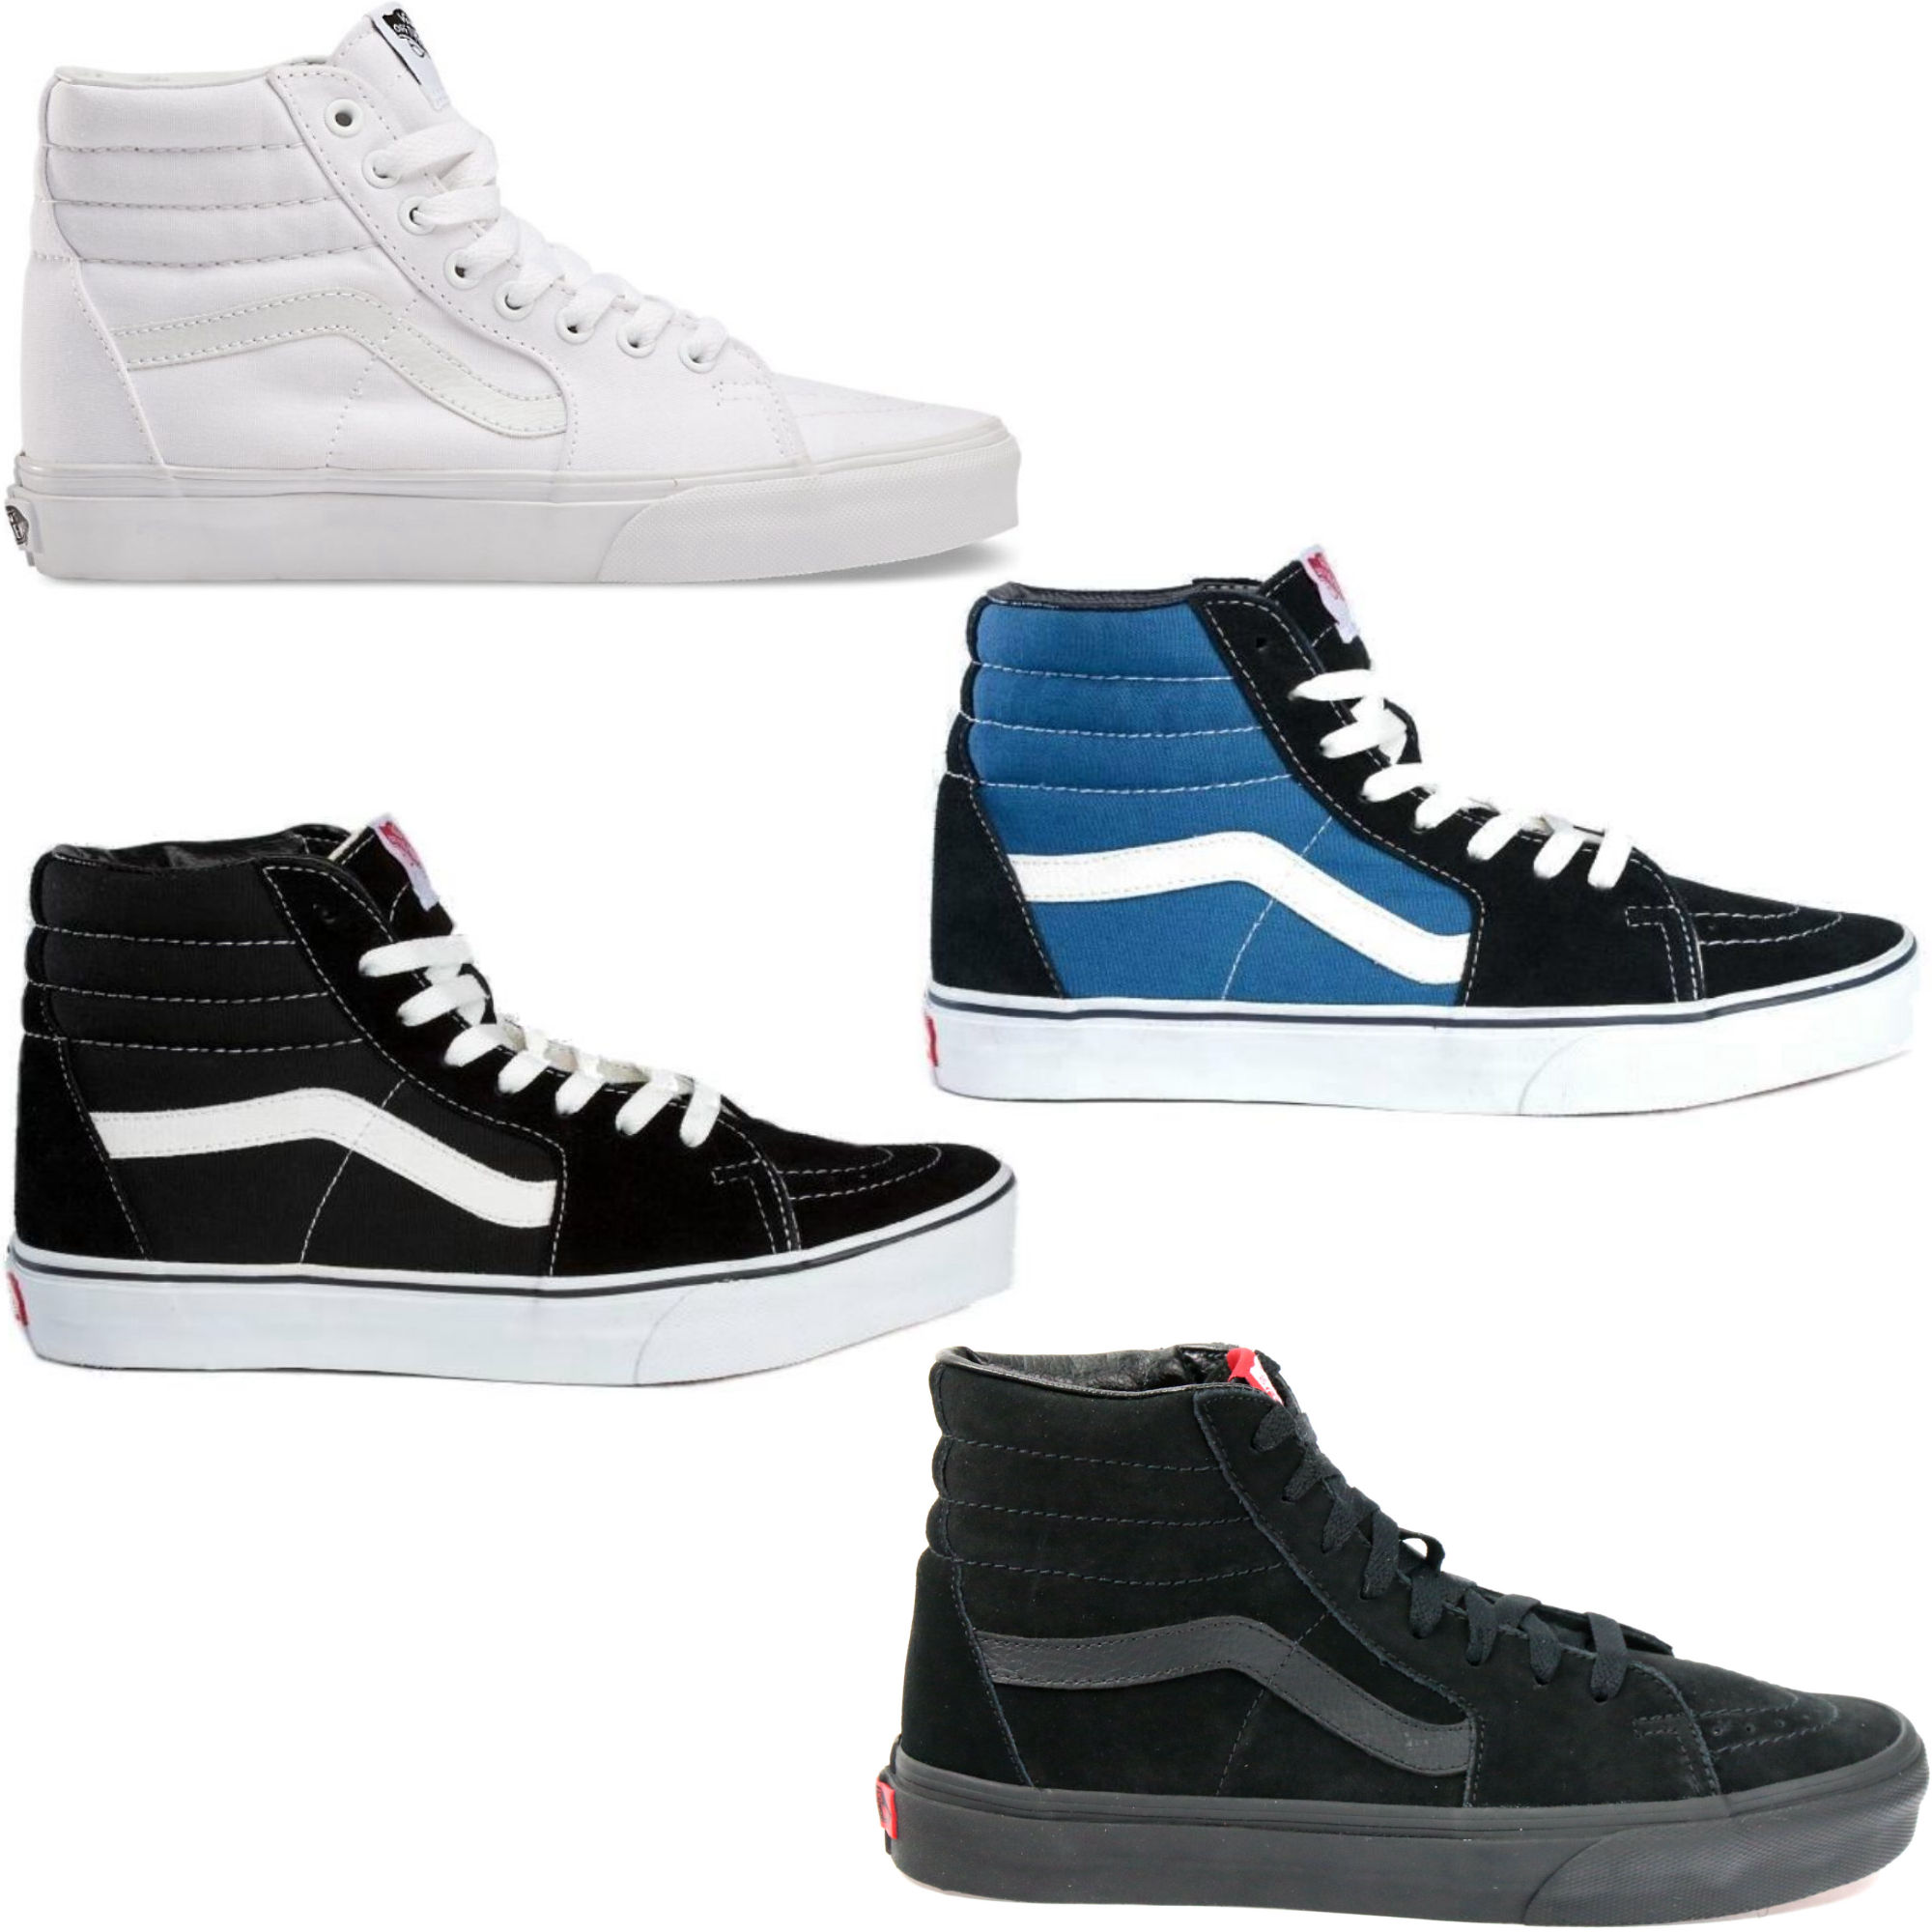 vans sk8 hi sneaker schuhe herren damen ebay. Black Bedroom Furniture Sets. Home Design Ideas